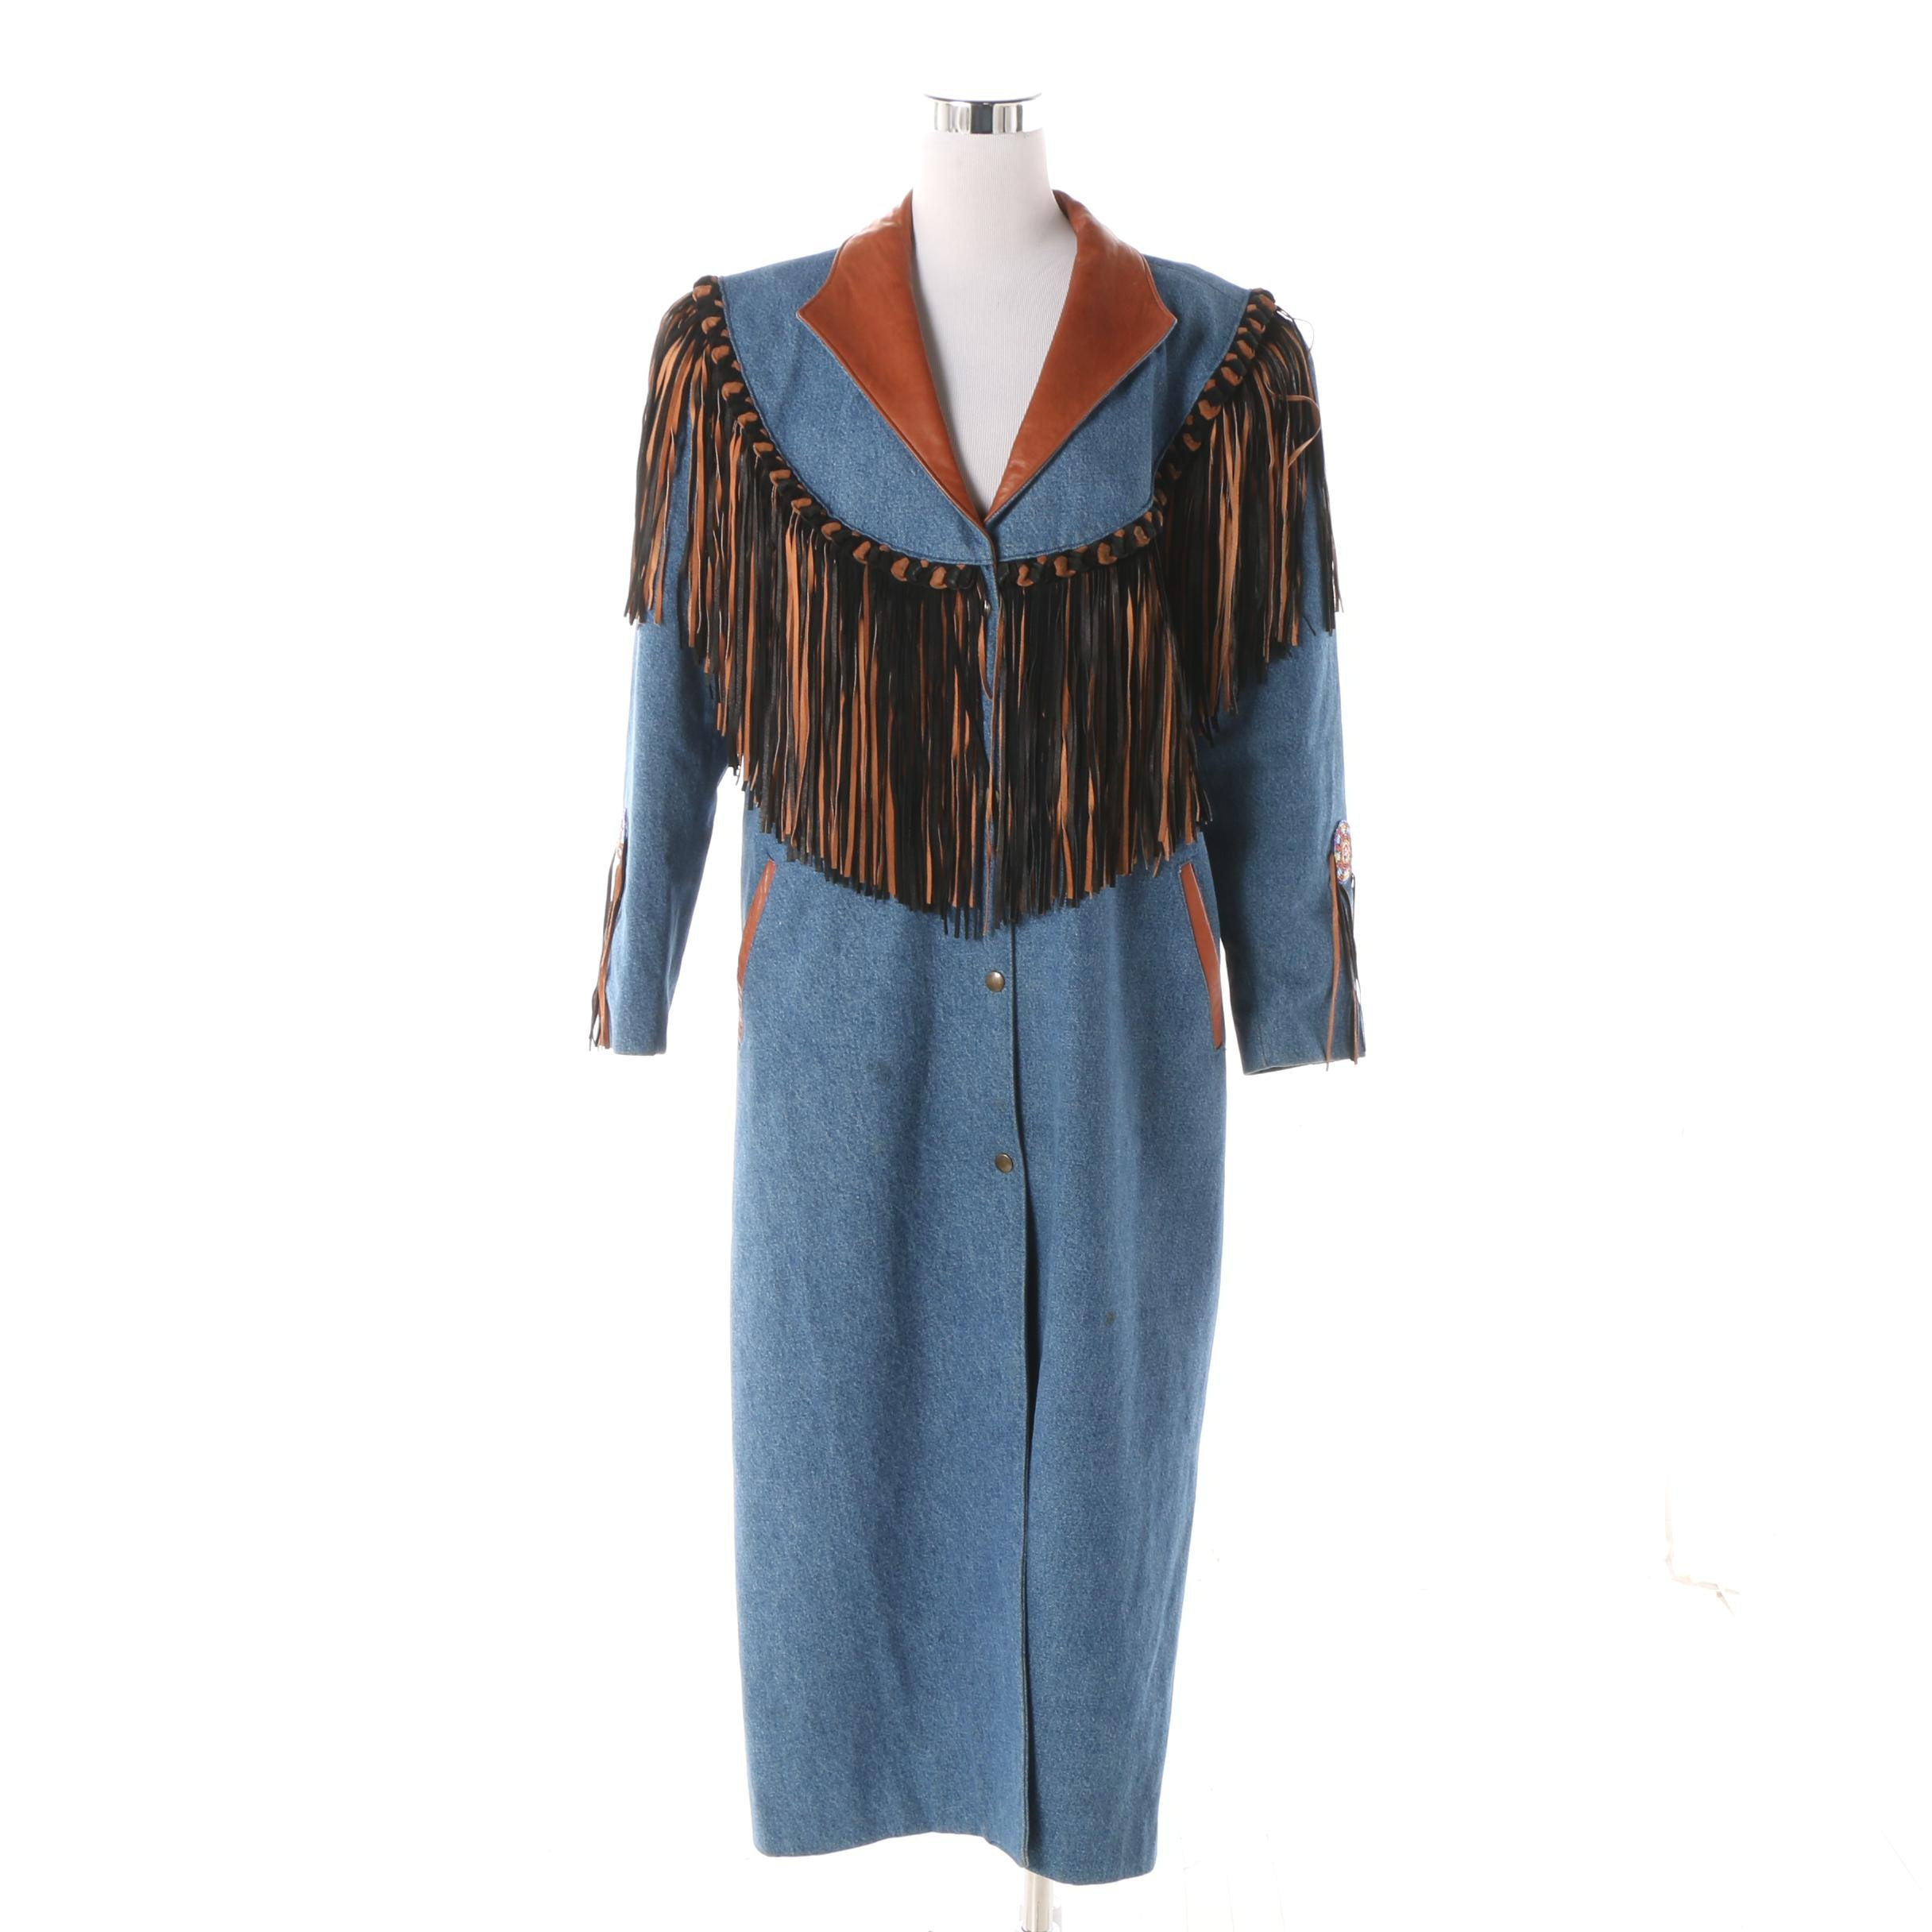 Women's Denim and Leather Duster with Fringe Trim